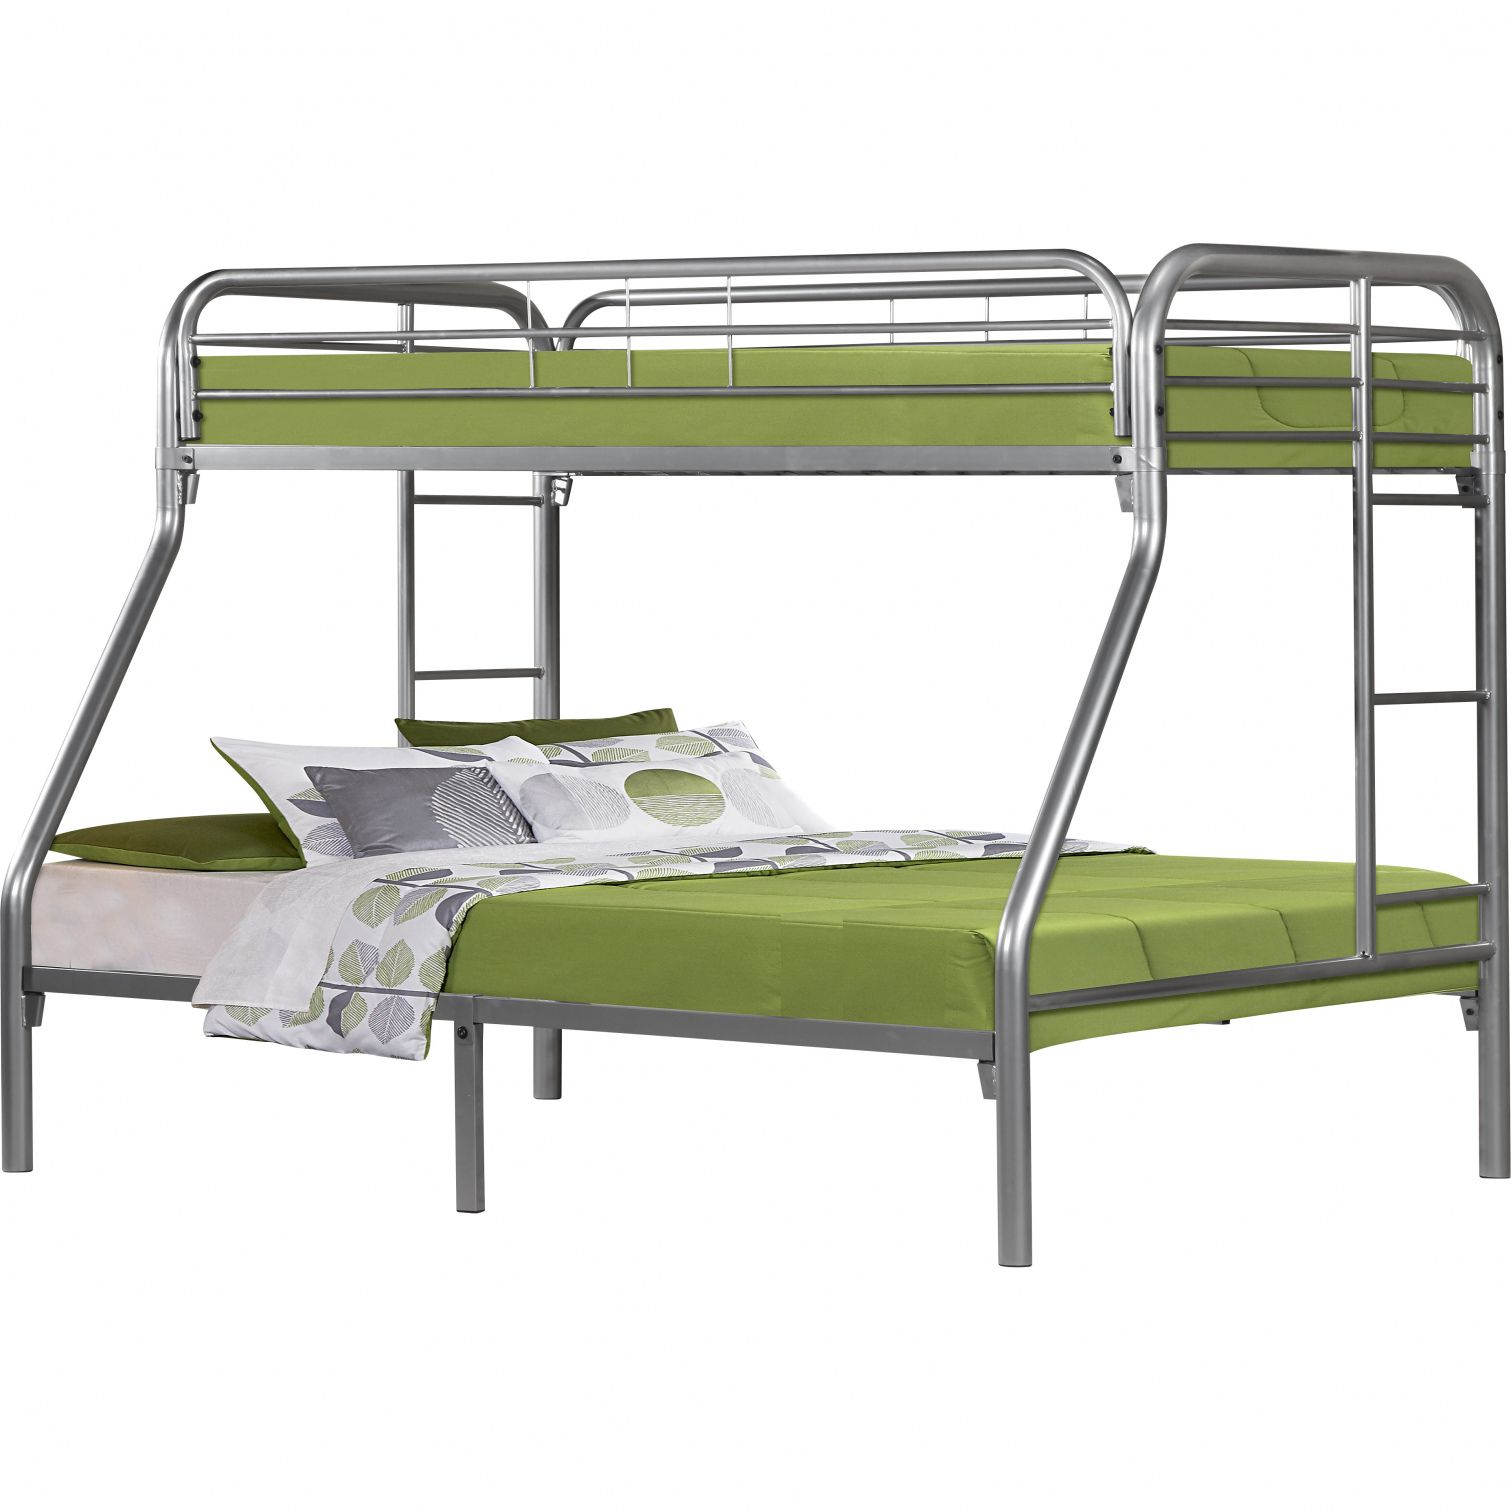 How To Put Together A Bunk Bed With Futon Modern Interior Paint Colors Check More